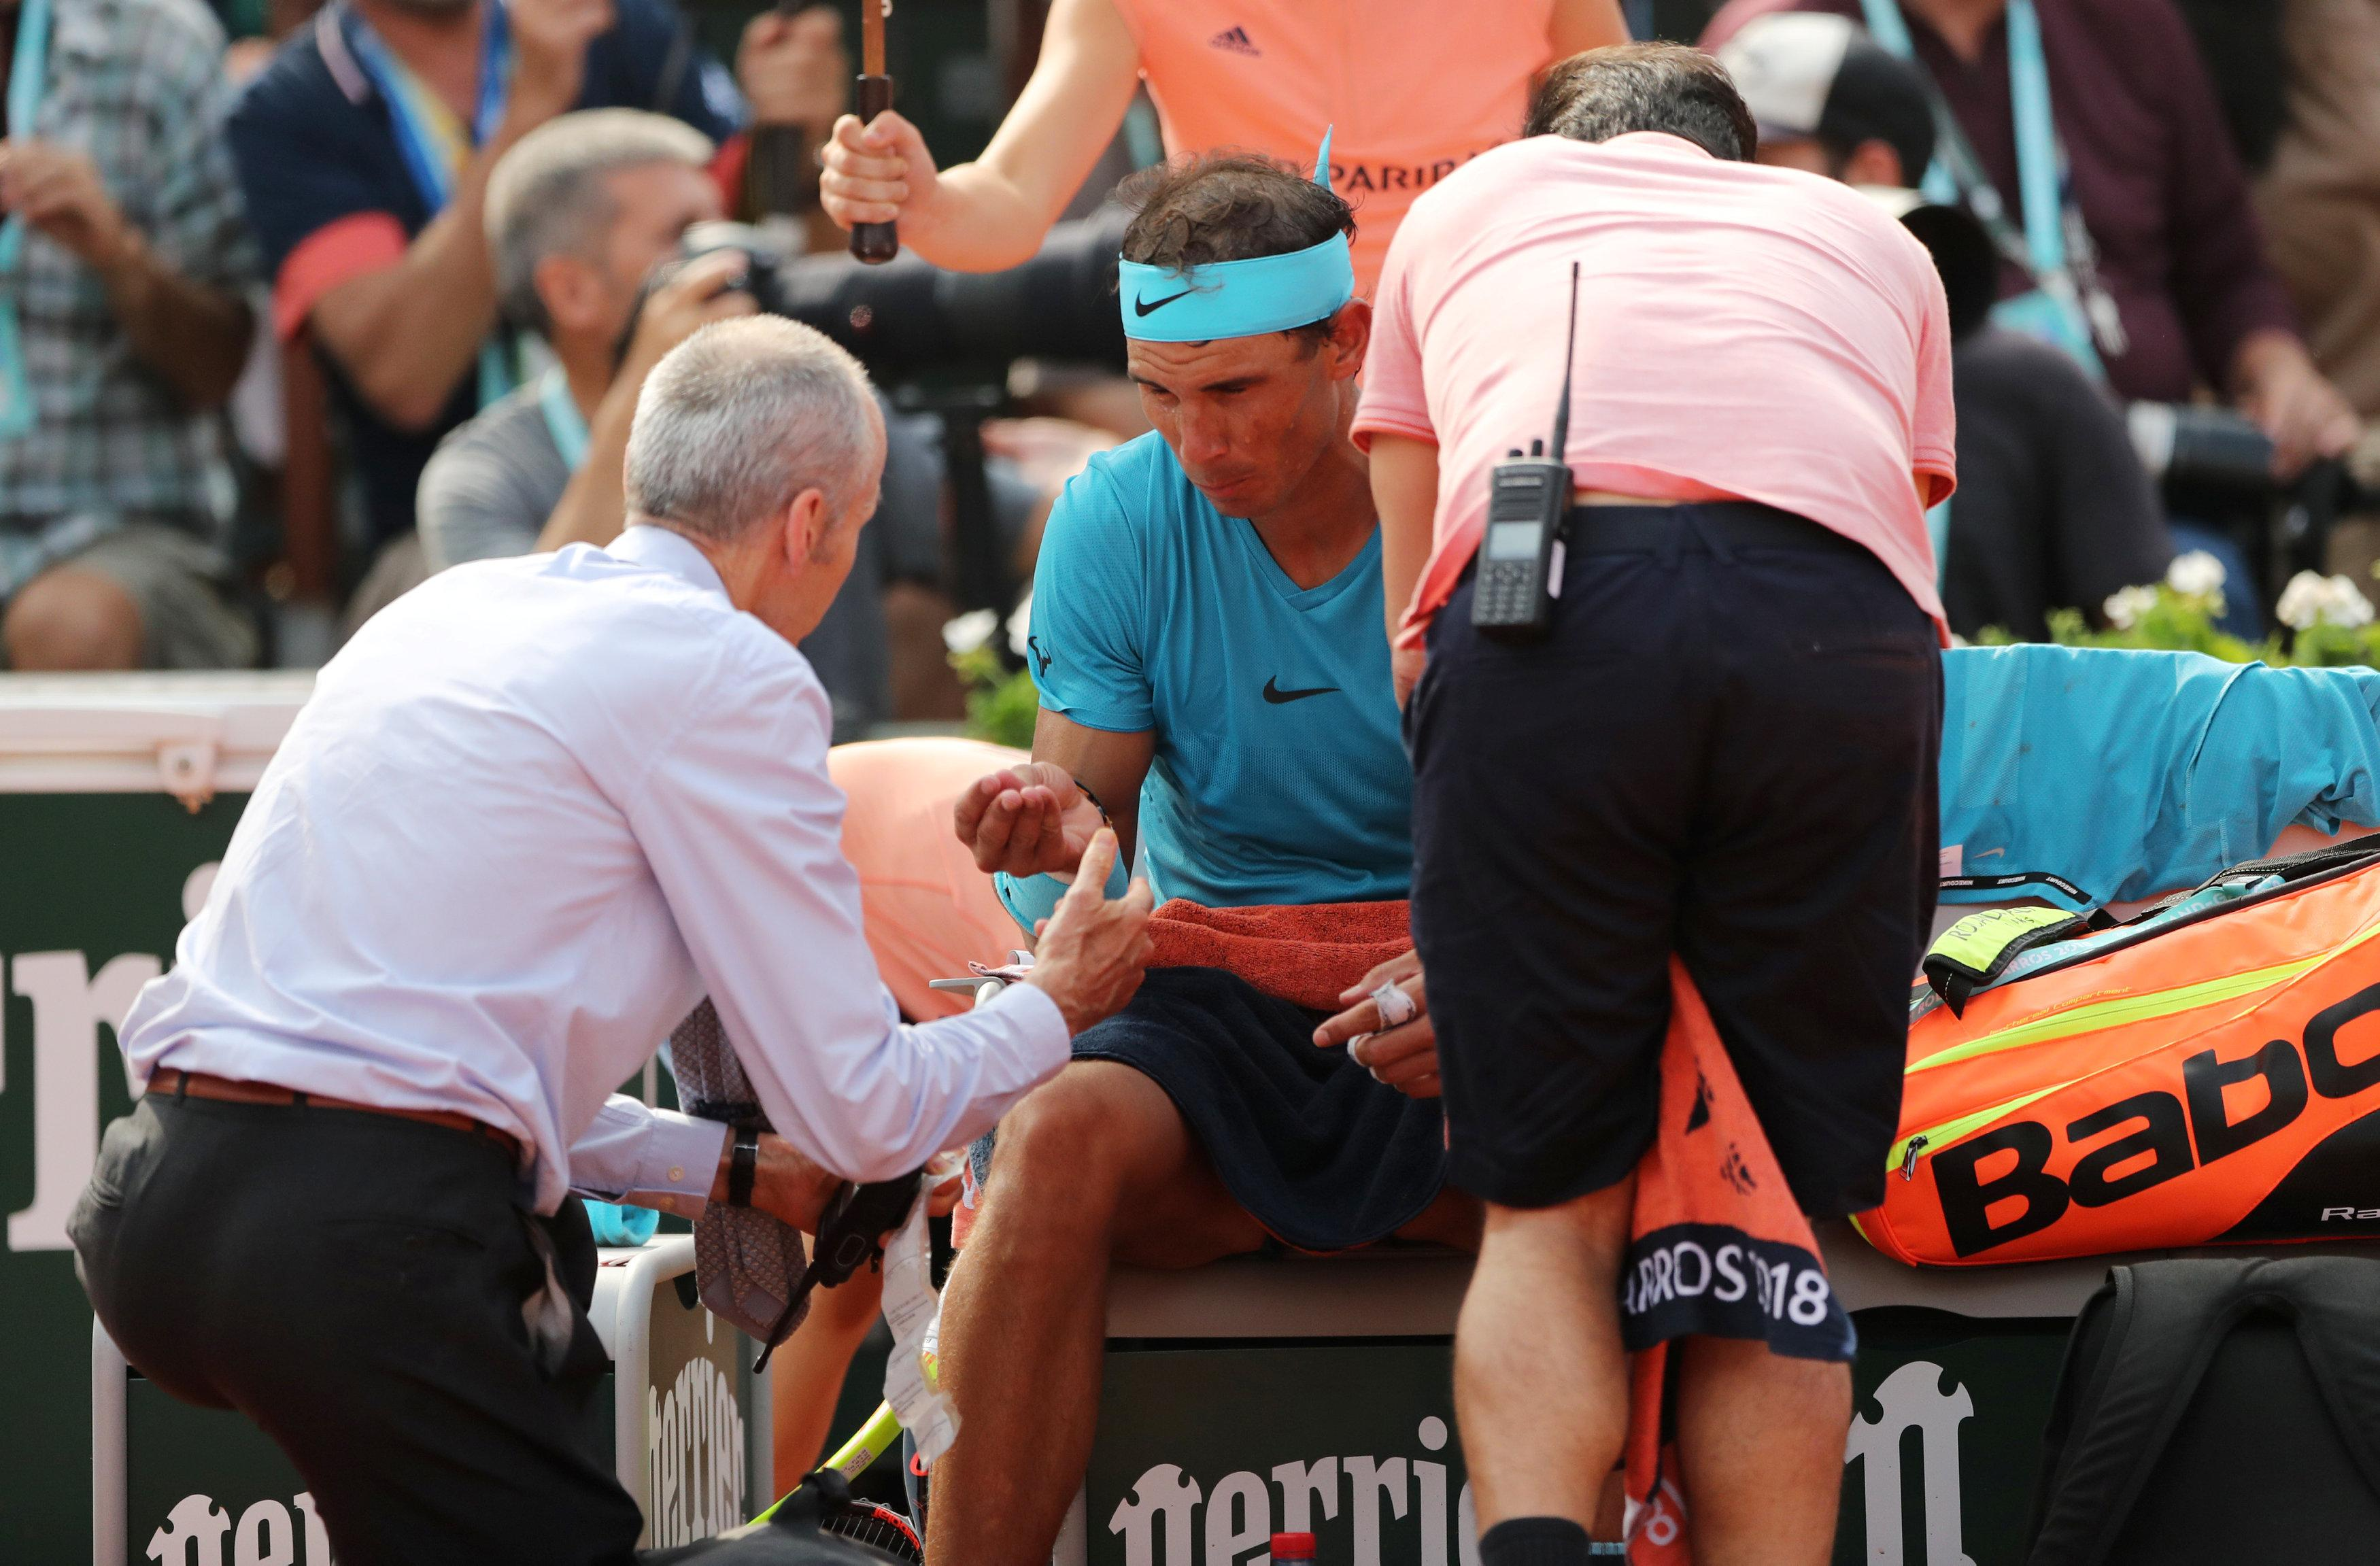 Nadal's game was impacted by cramp and he received treatment court side